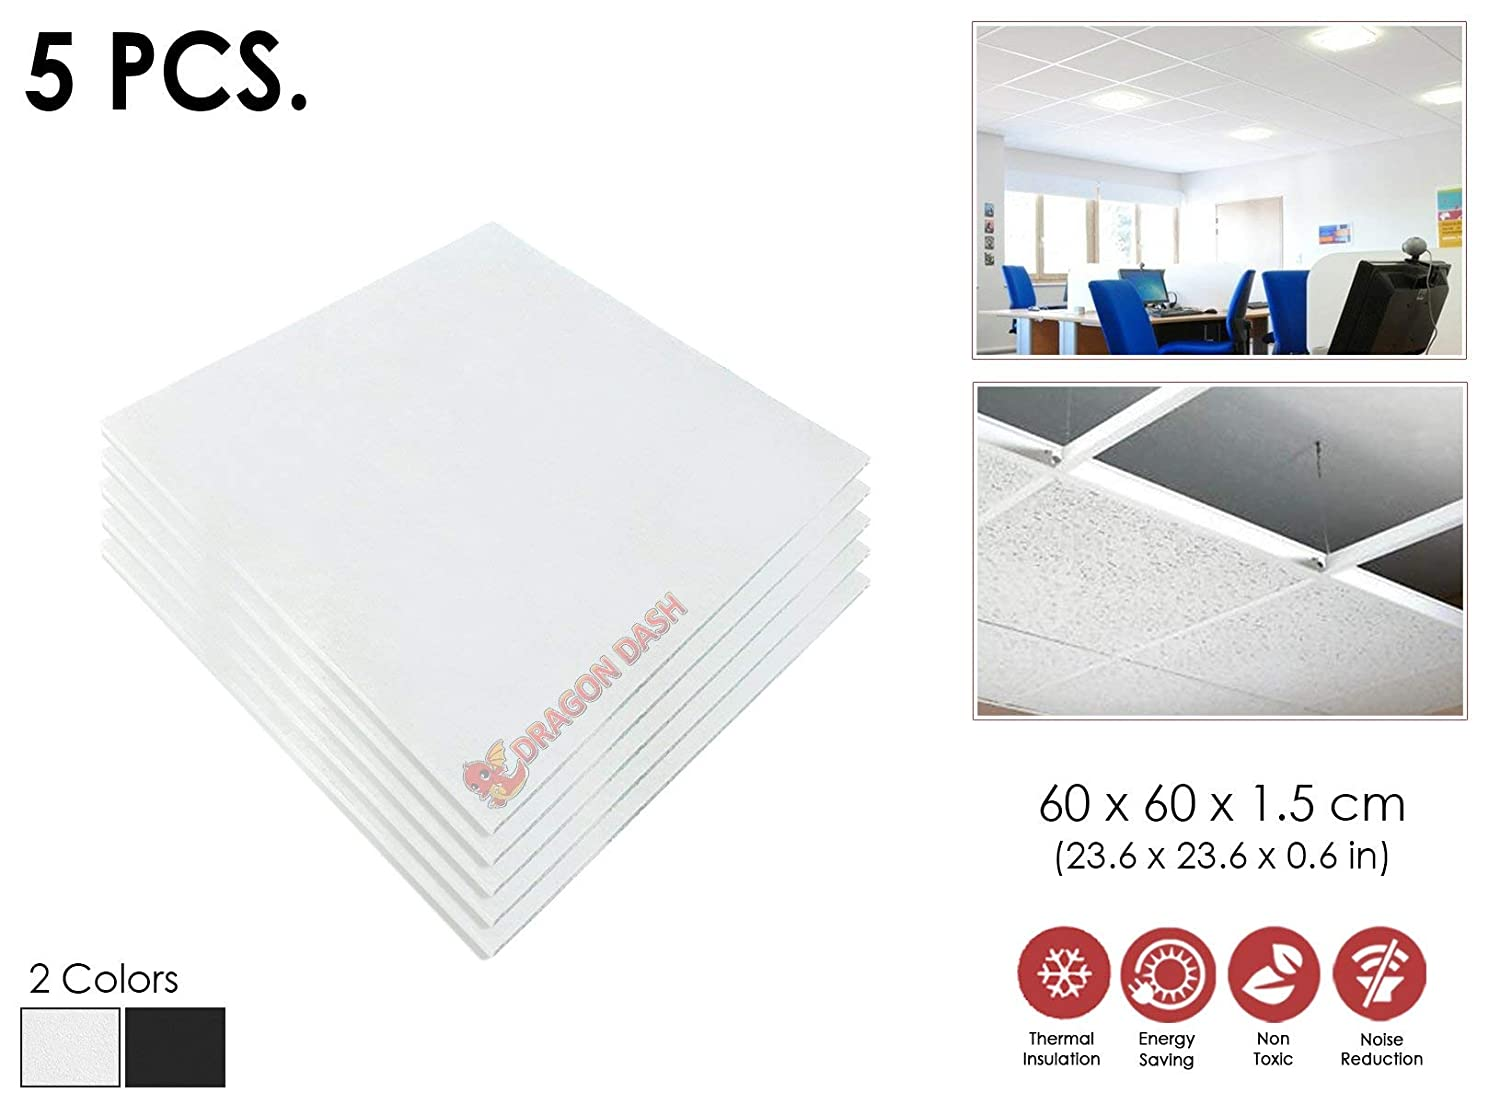 5 Pcs White Thermal Sound Absorbing Moisture Proof